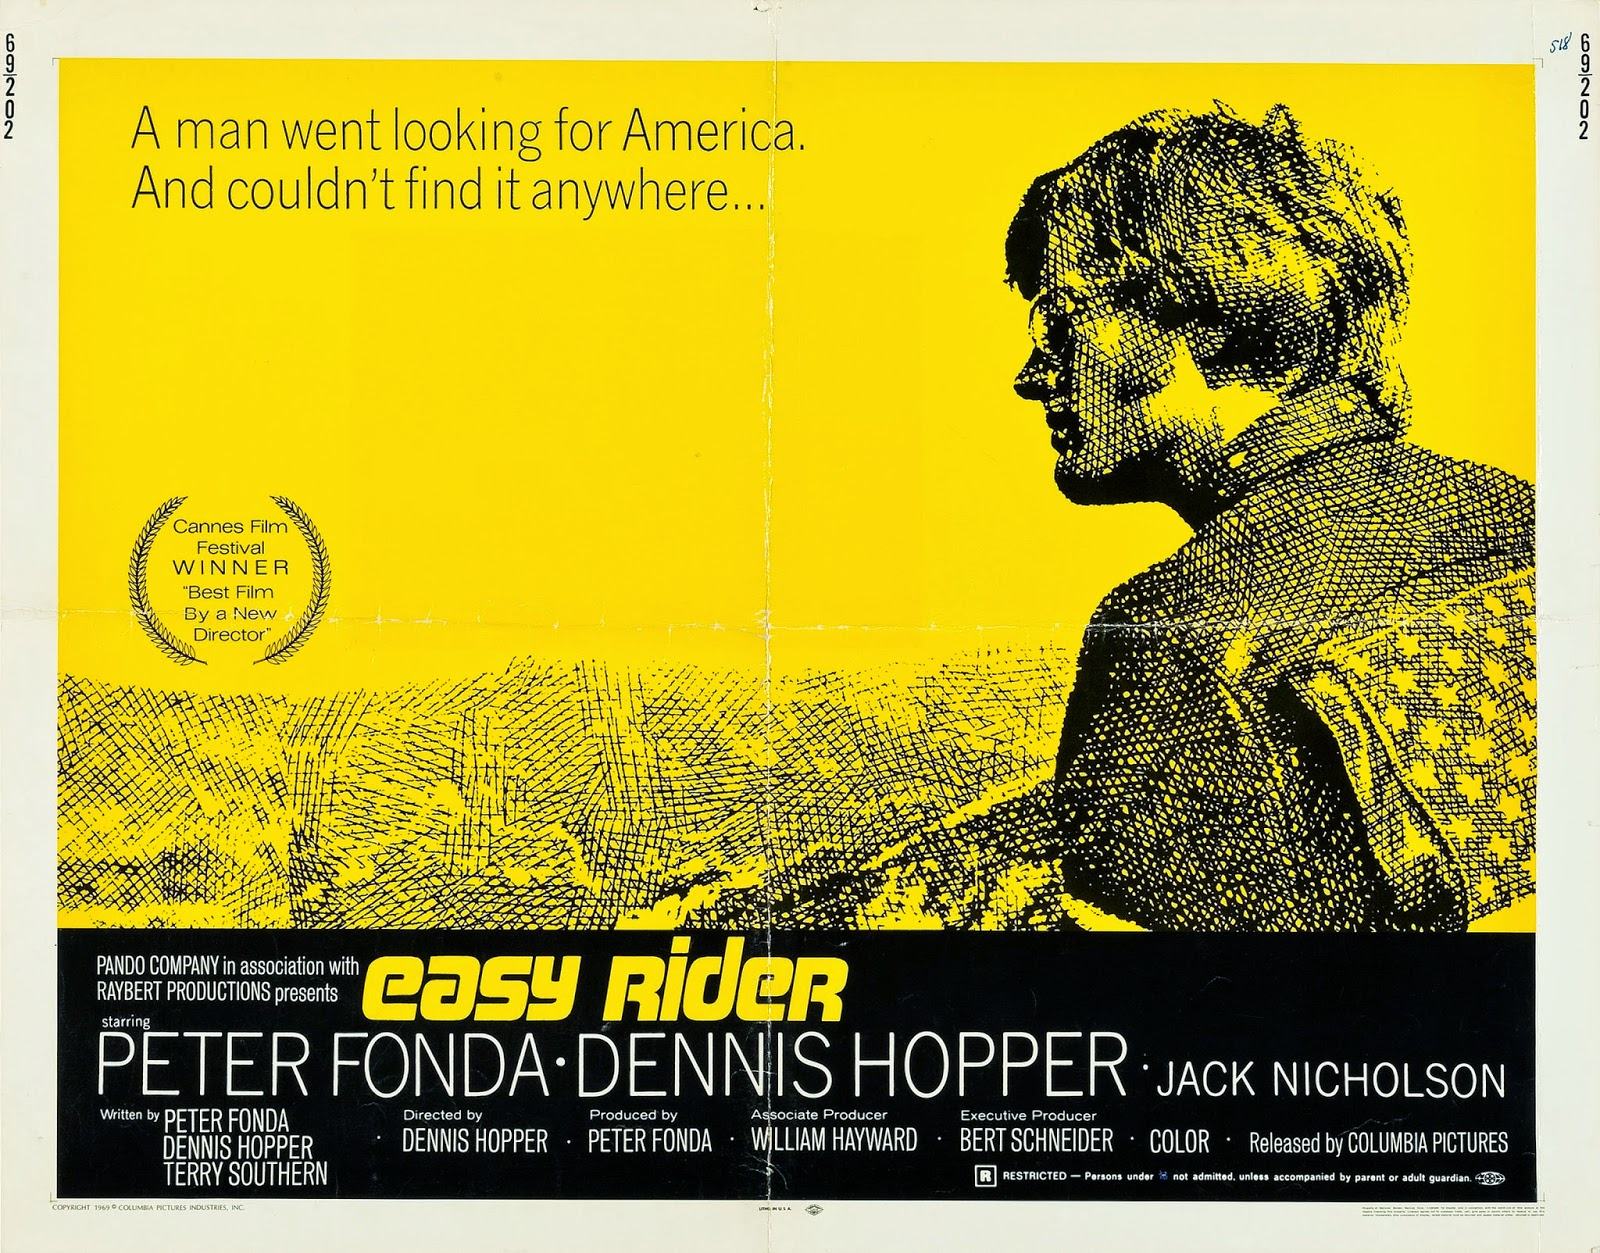 a film review of easy rider directed by dennis hopper Easy rider on mubicom find trailers easy rider directed by dennis hopper show all (4) steve pulaski's rating of the film easy rider.